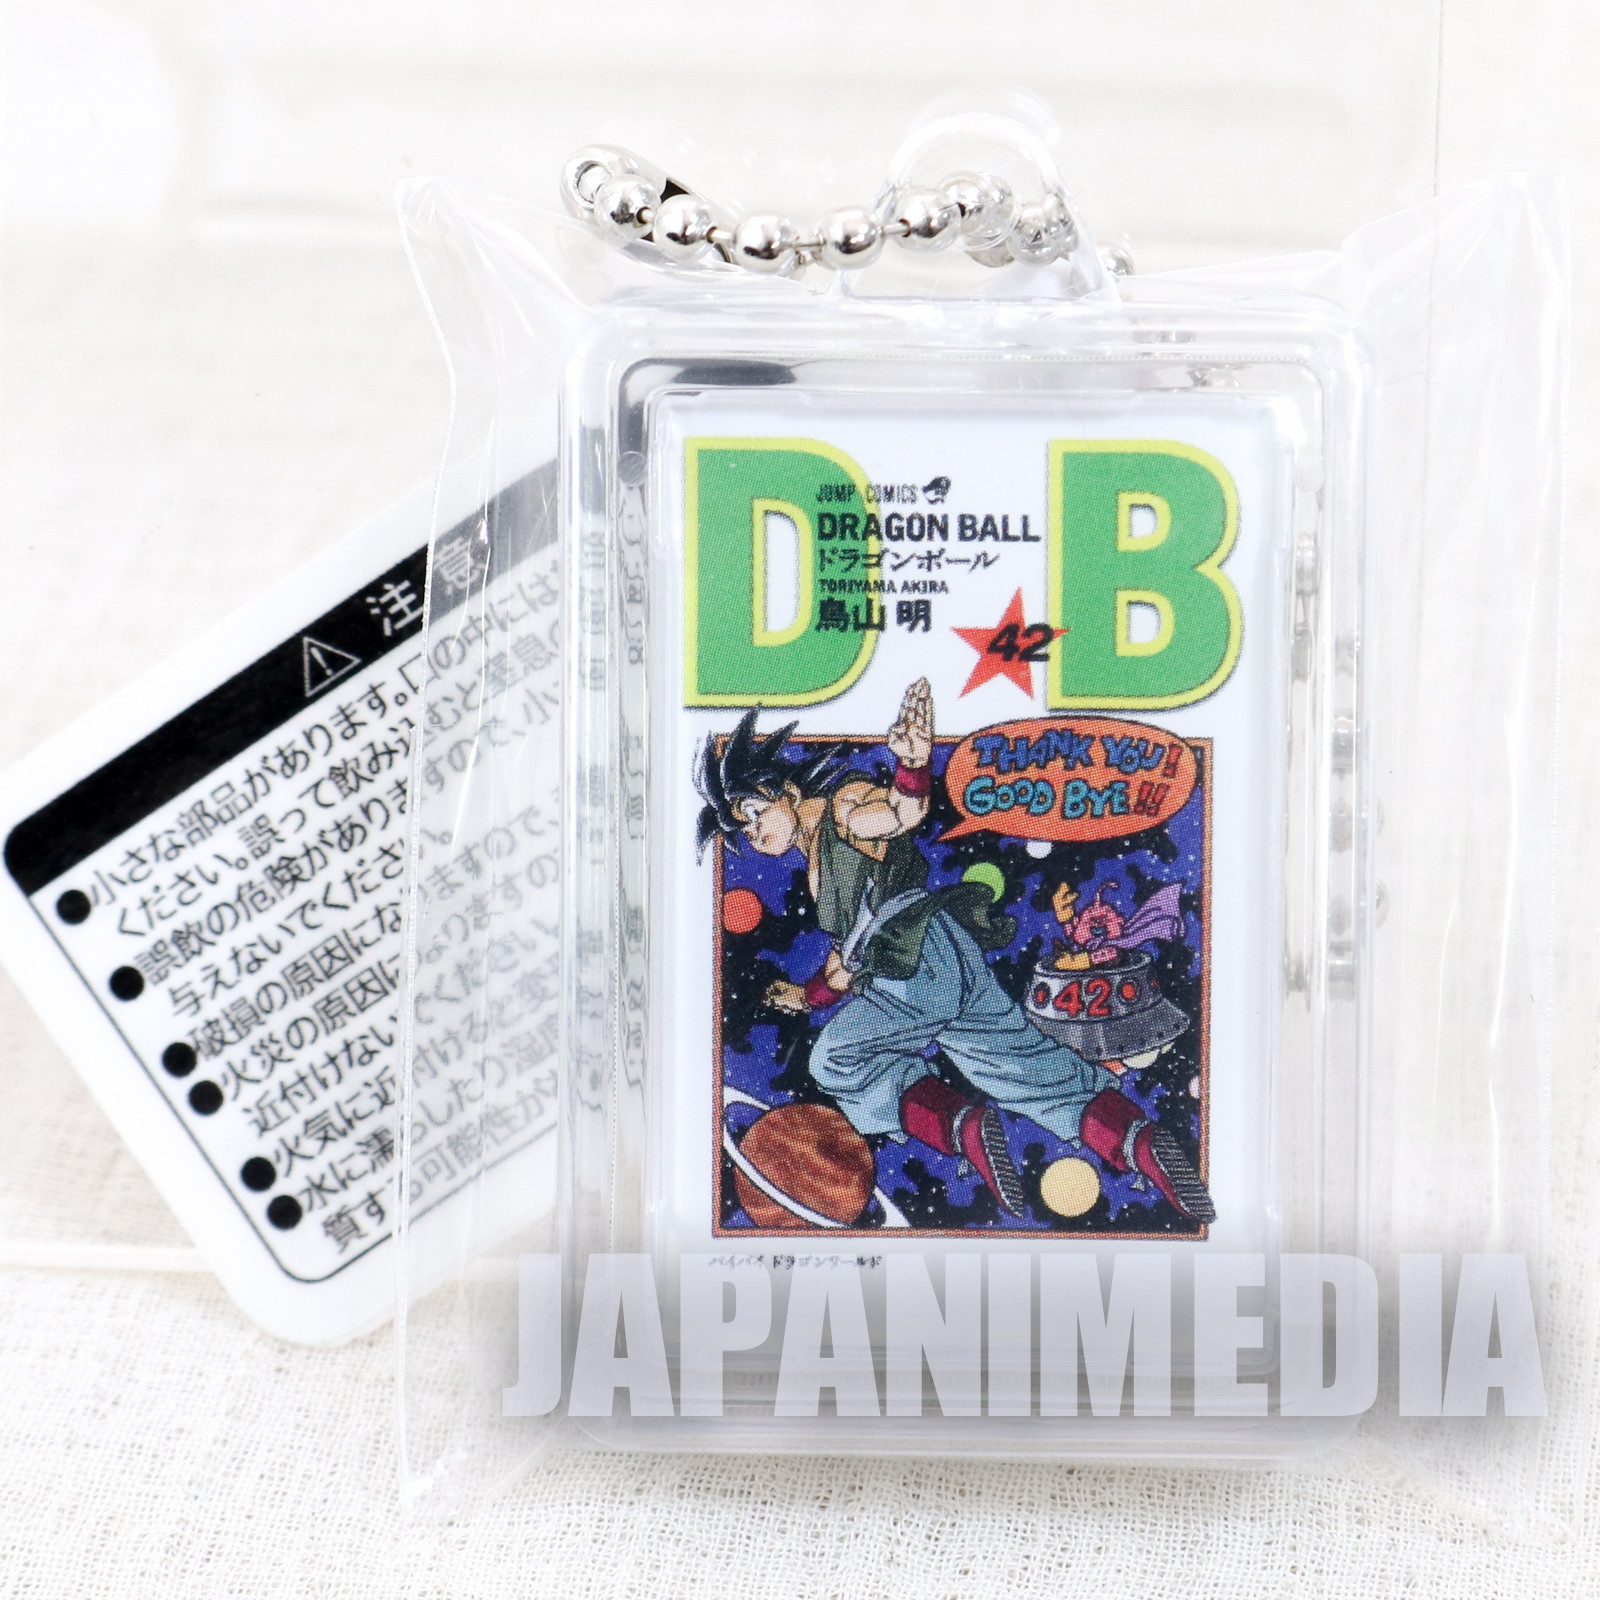 Dragon Ball Z Comics #42 type Mascot Keychain JAPAN ANIME